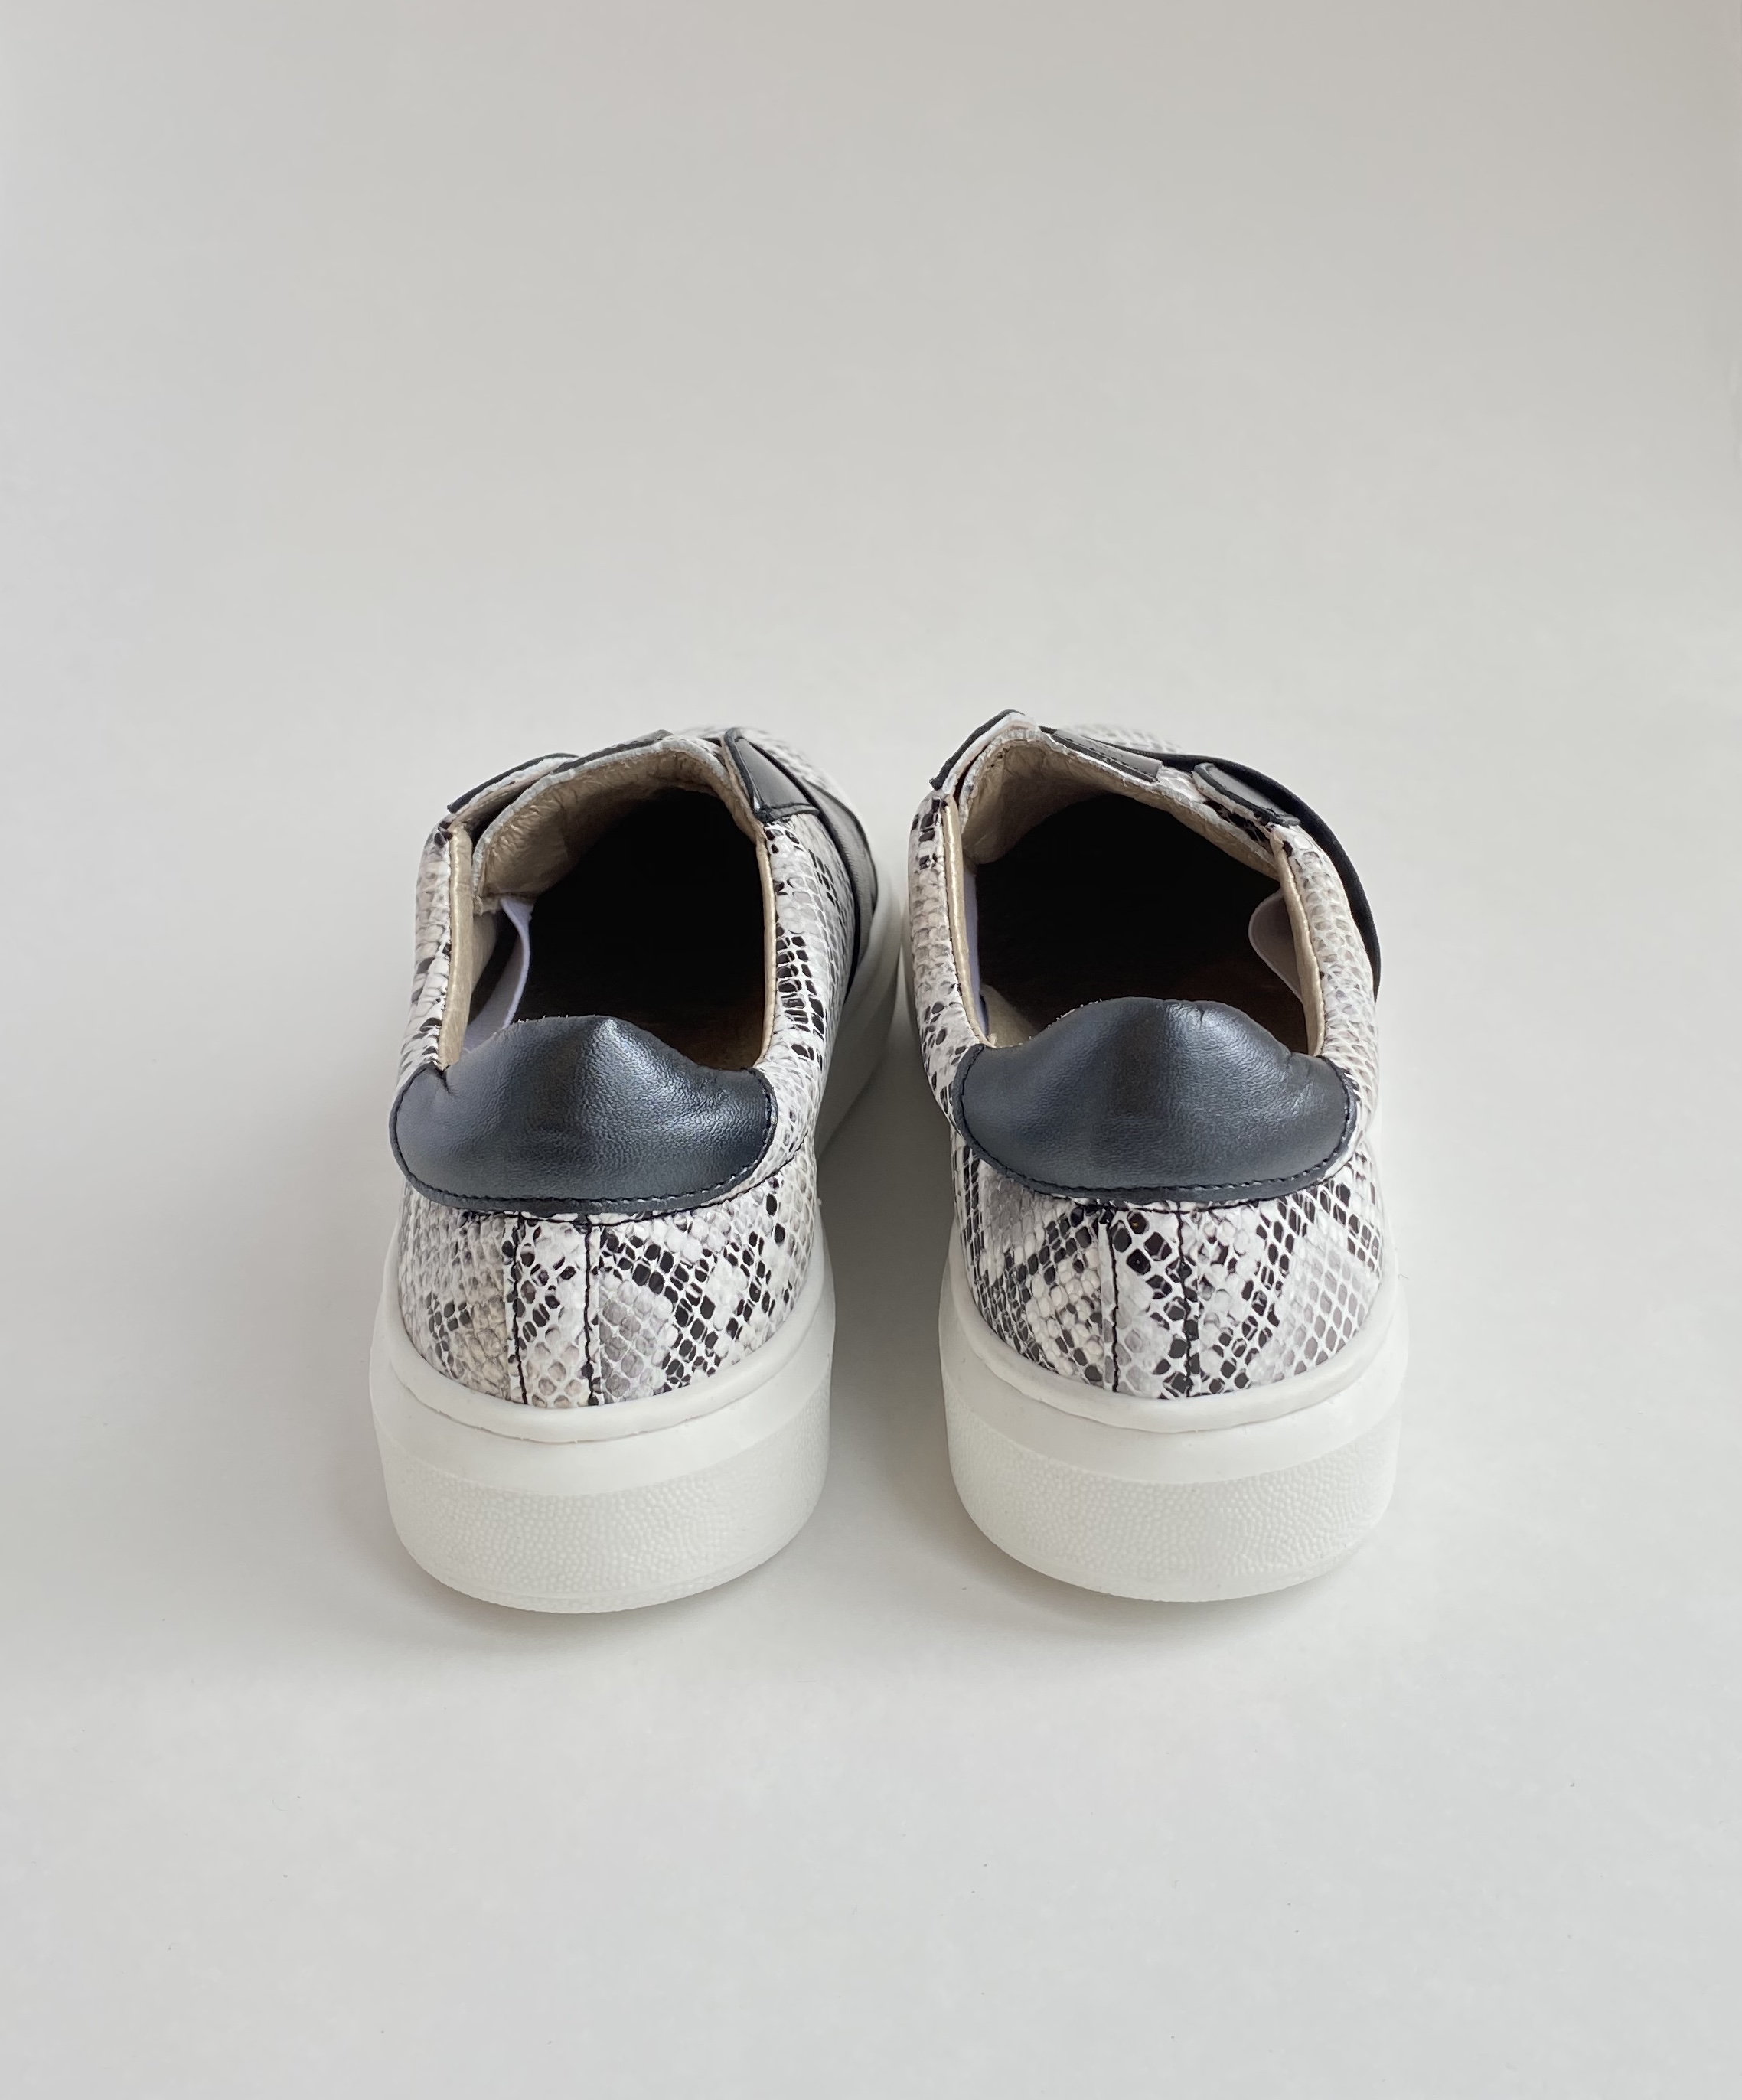 NENS 8057/CA-RY Snake Print Sneakers. Before £49.95